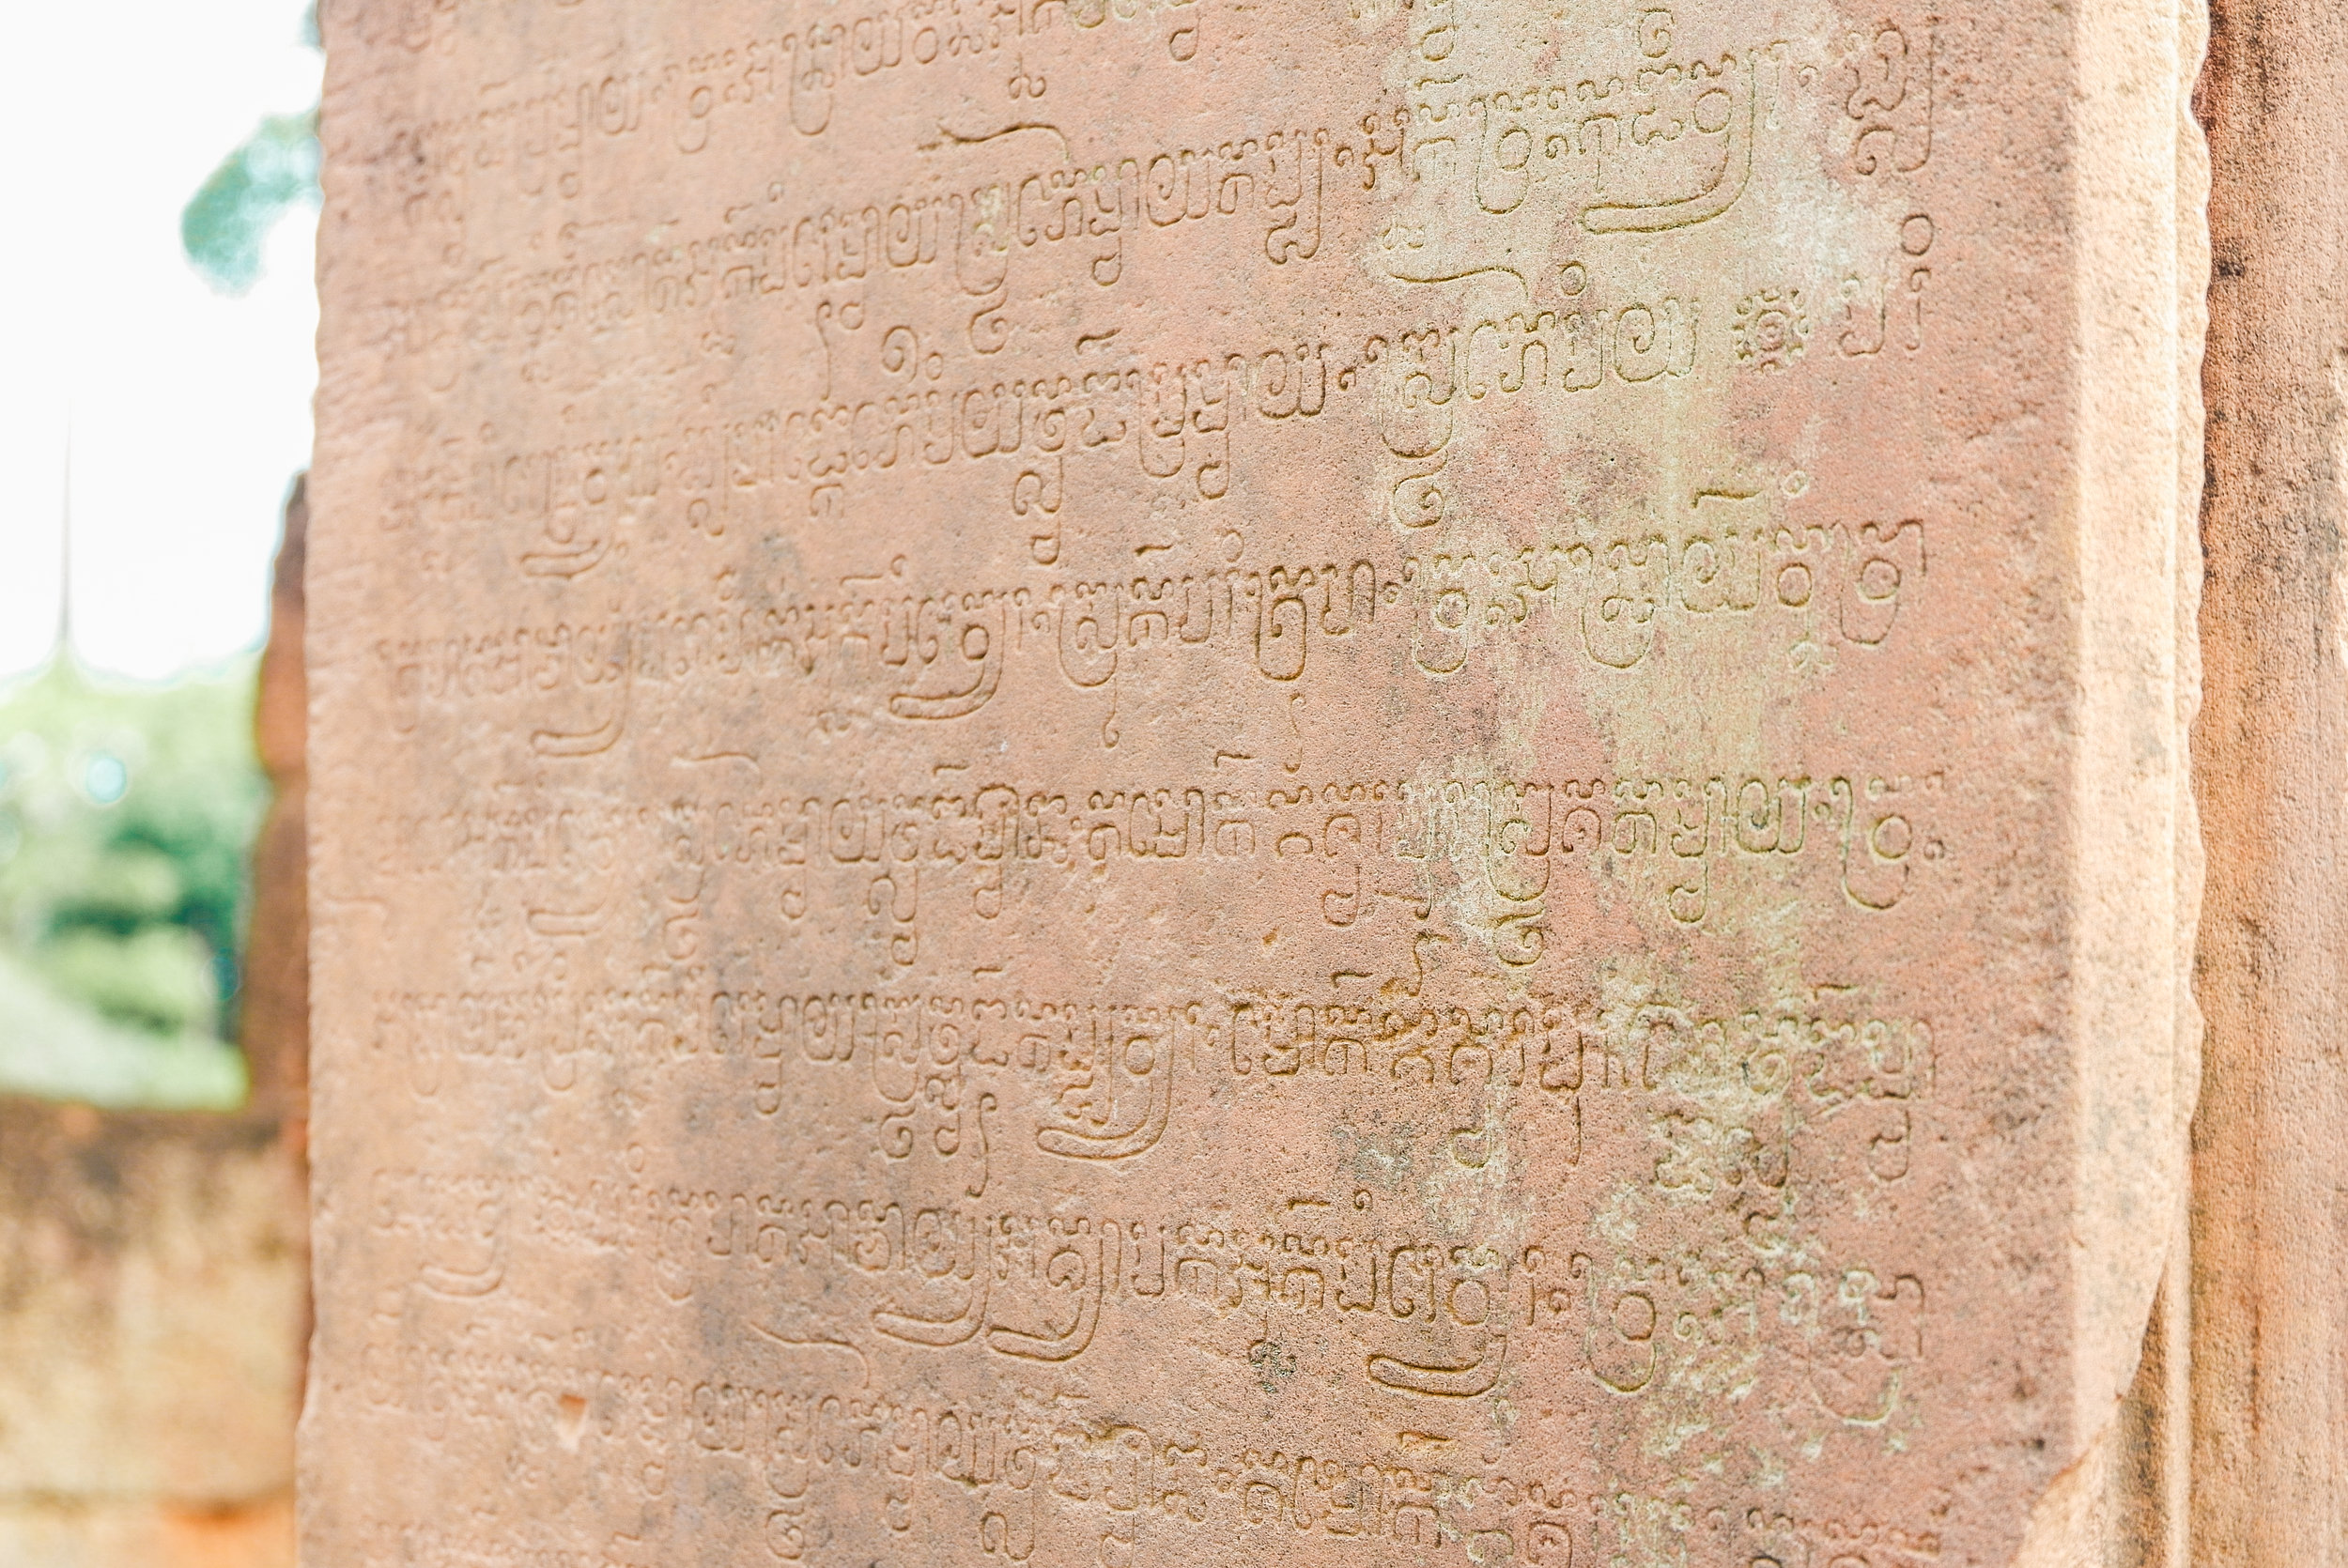 Sanskrit inscription